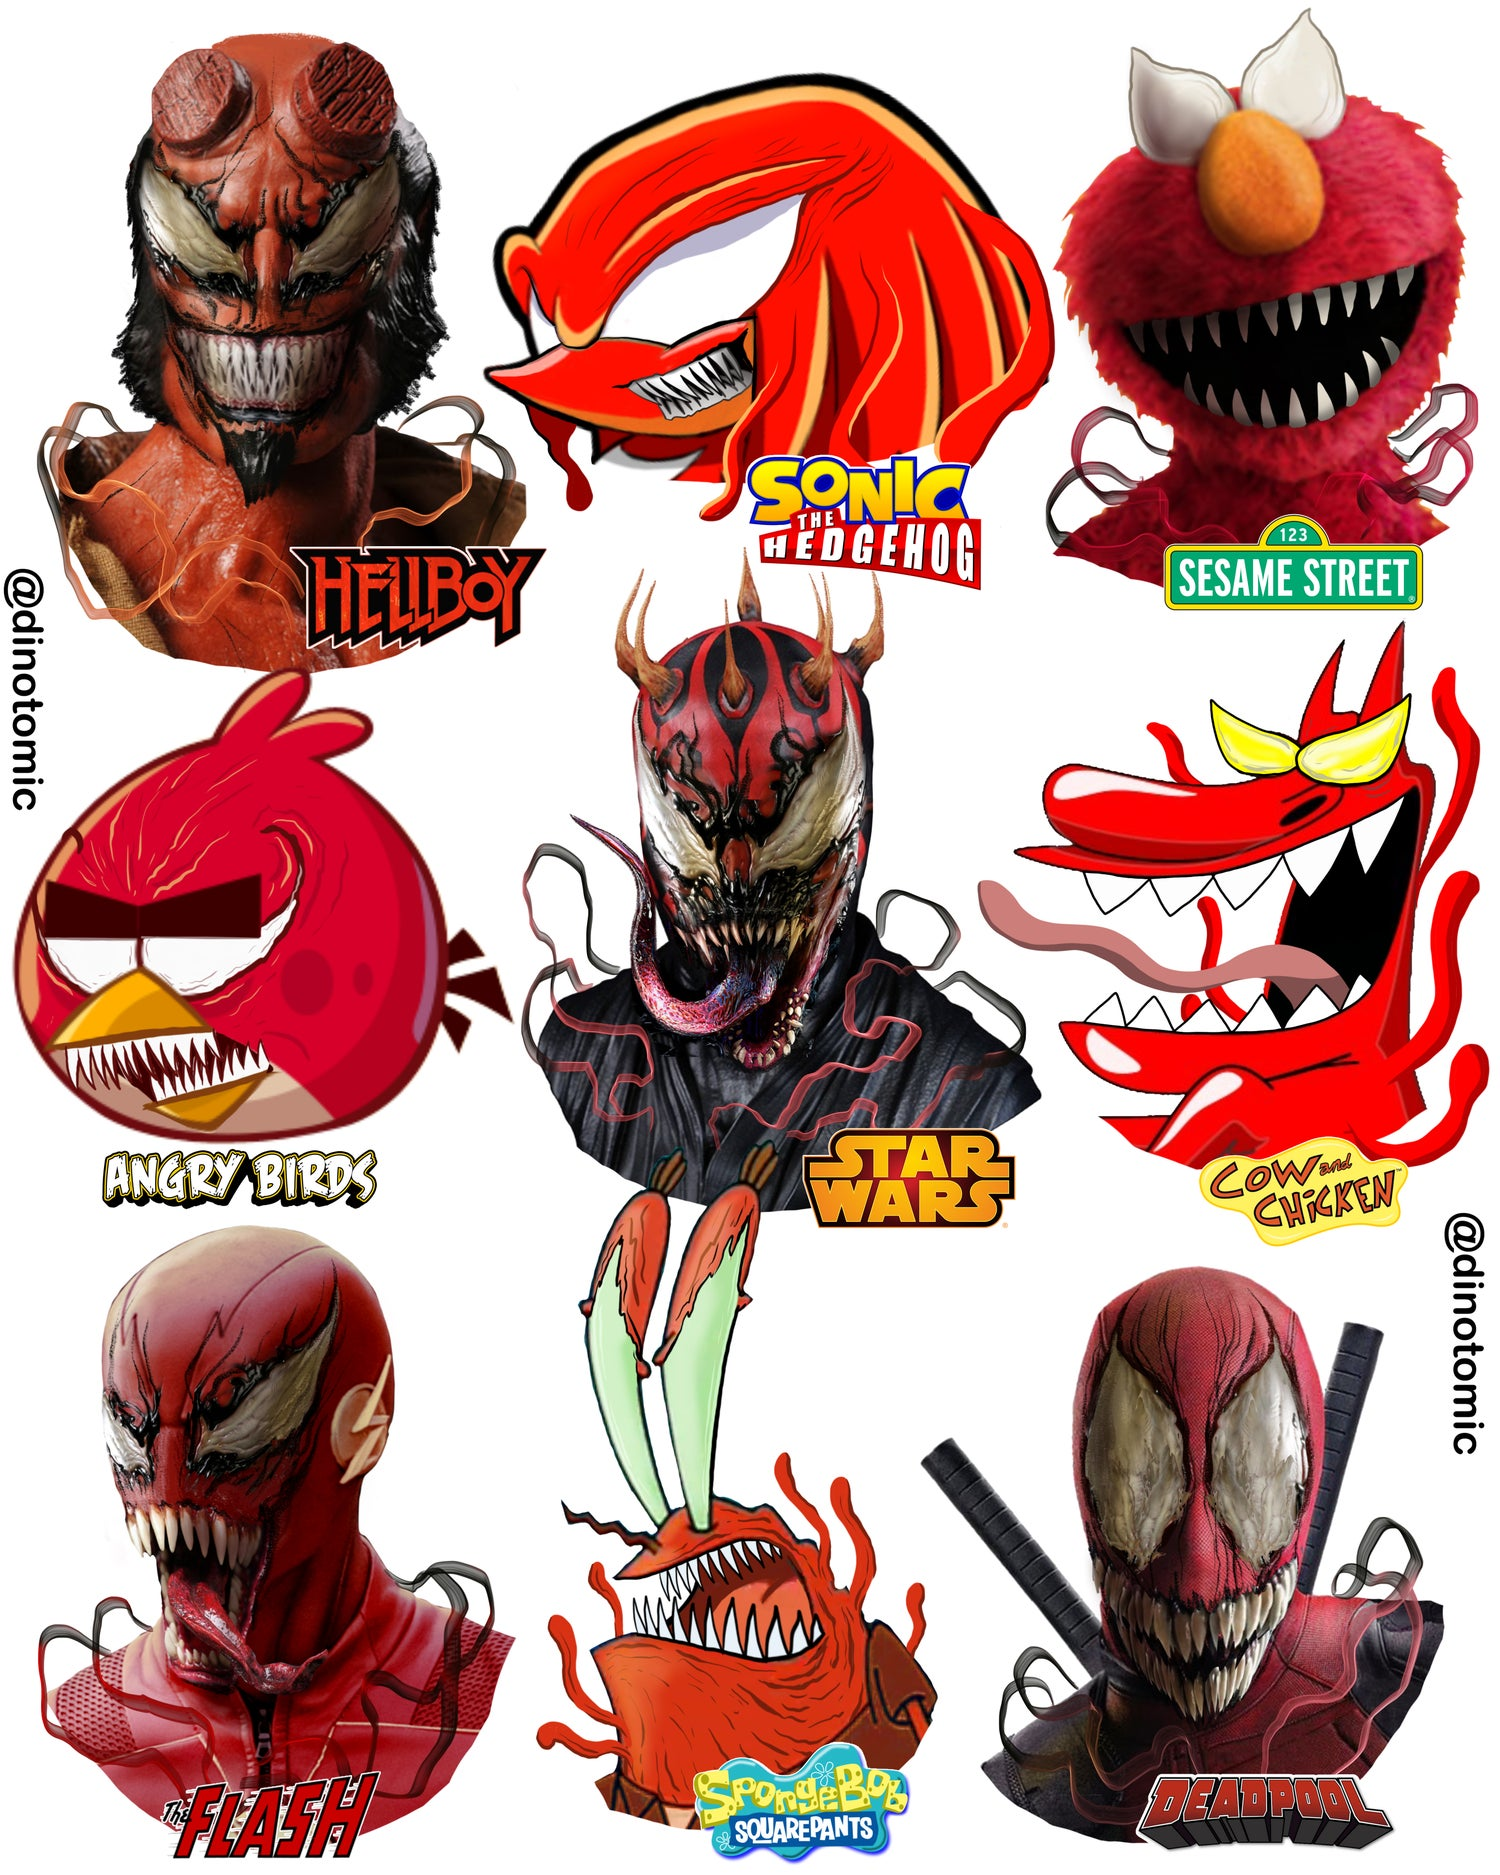 Image of #251 Red characters as Carnage!